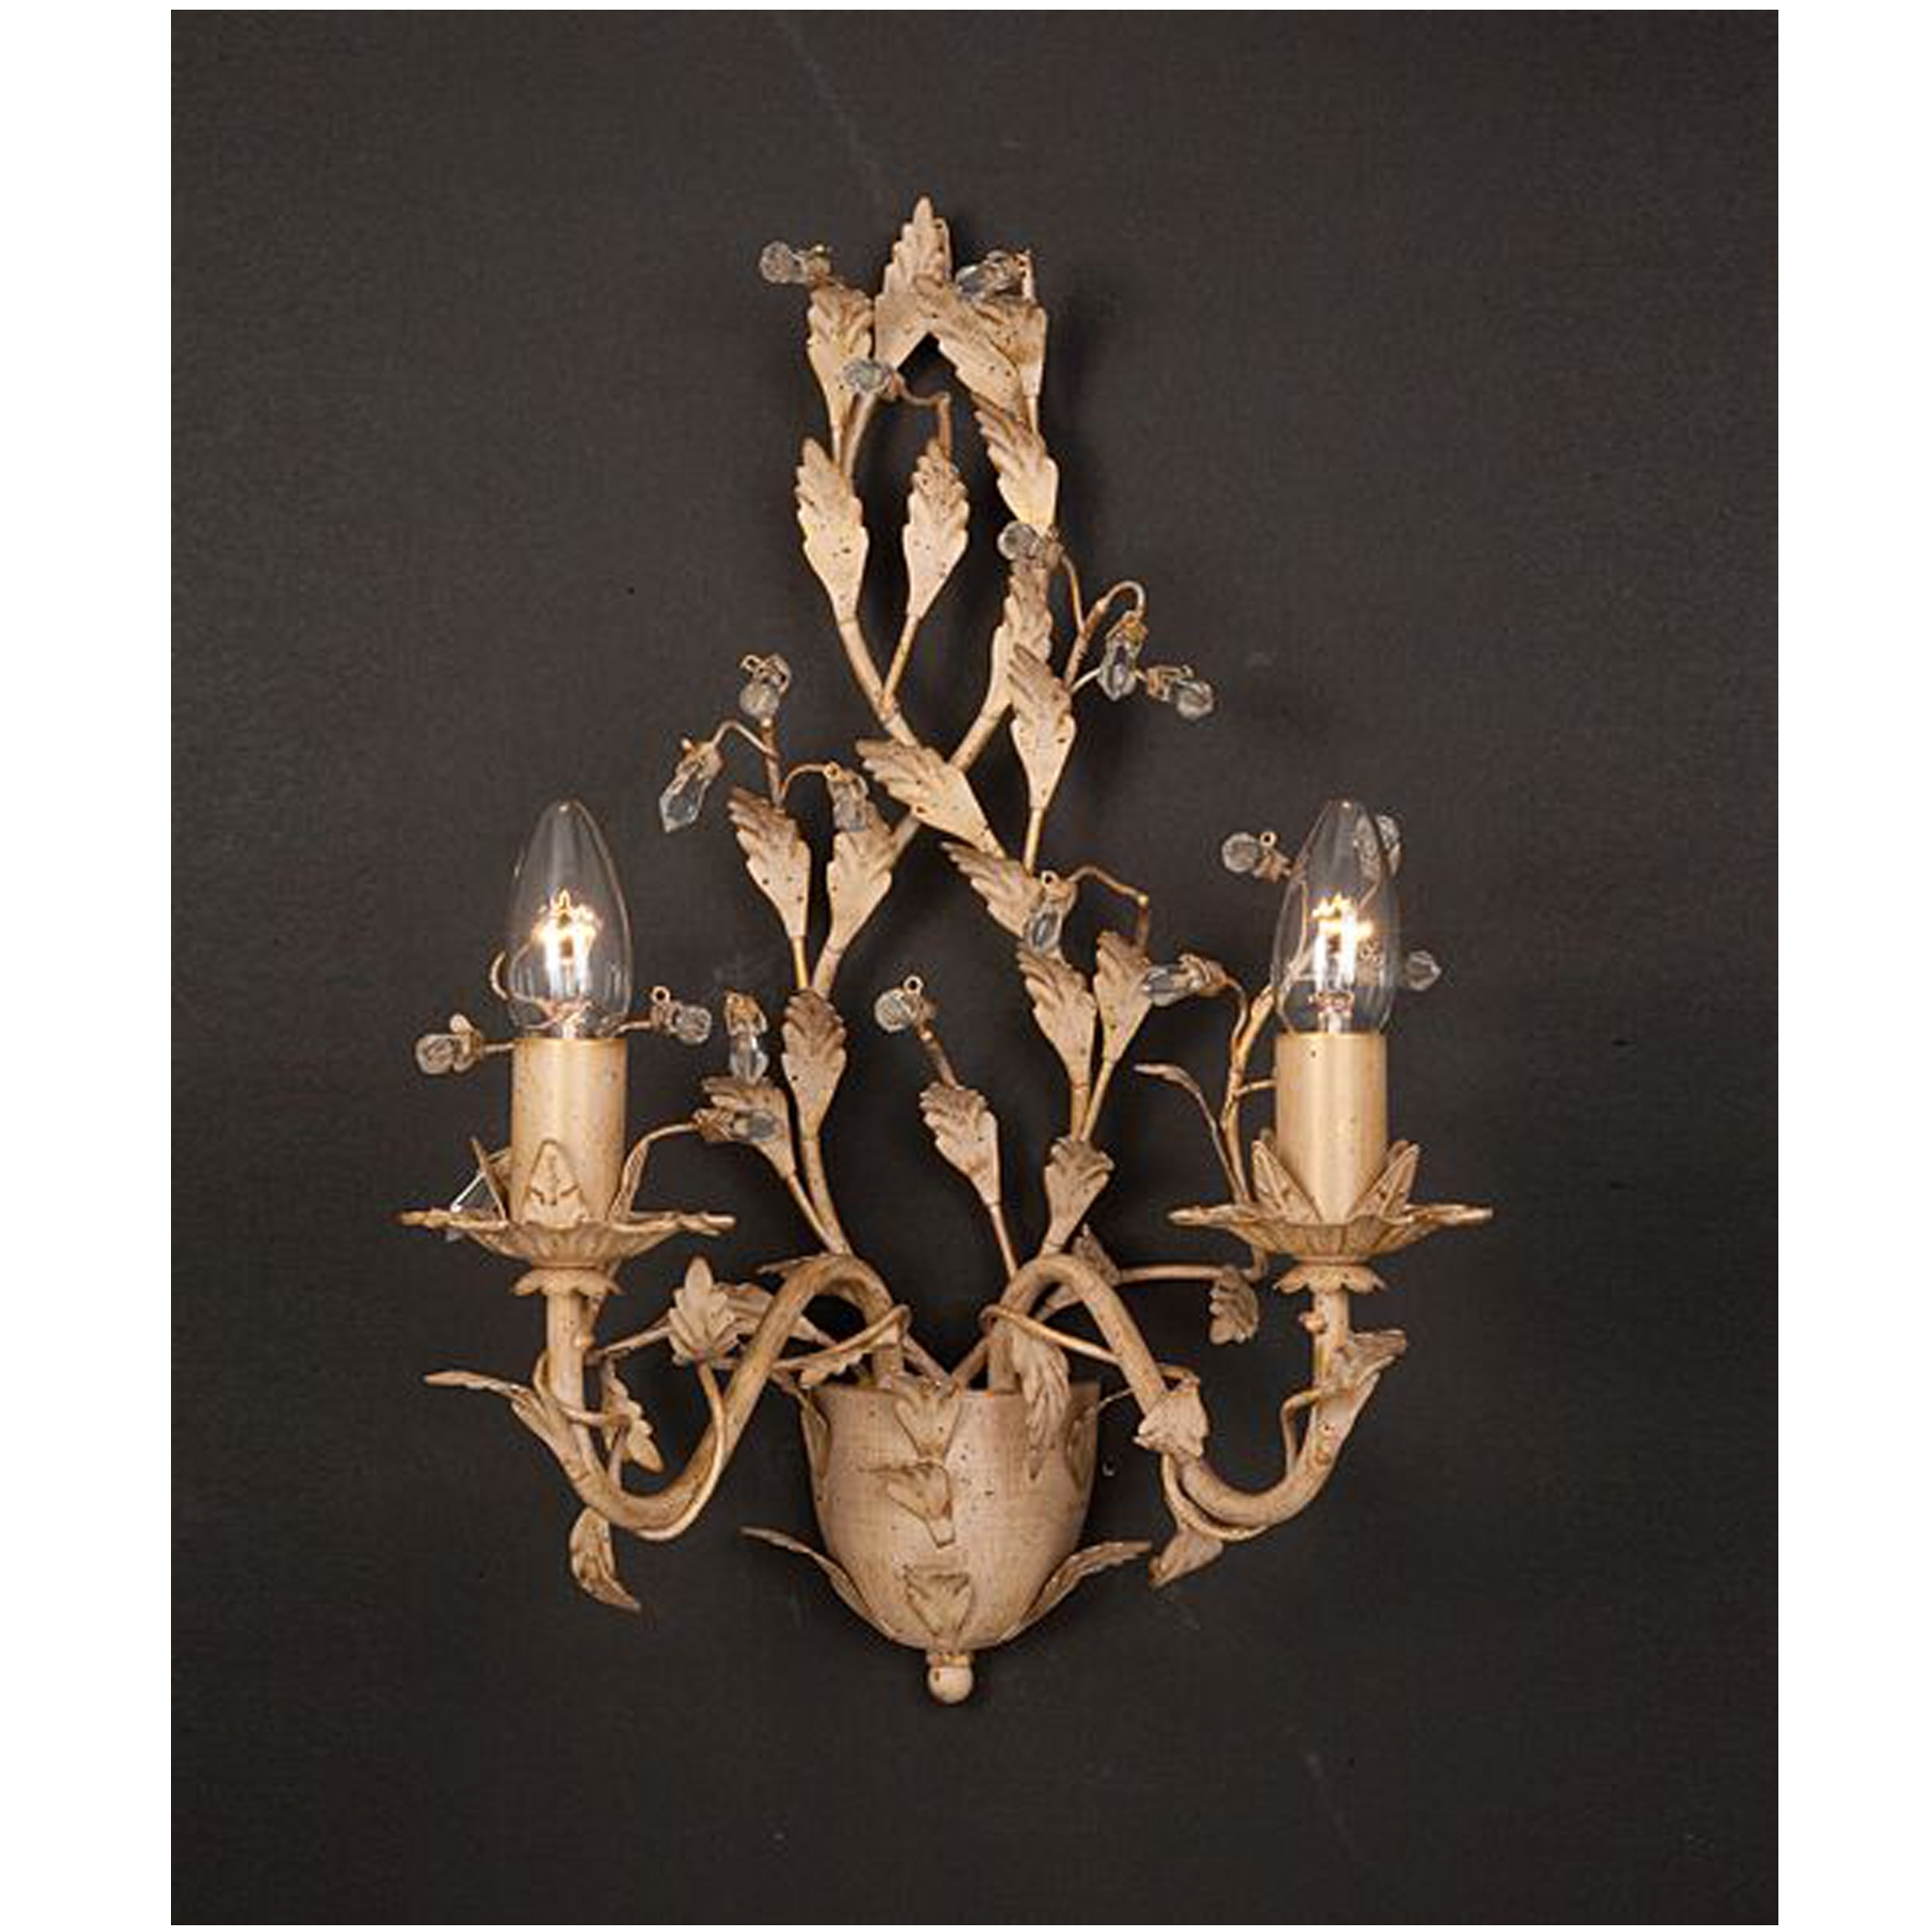 buy online d9a12 32163 Antique French Style Cream & Gold Wall Light